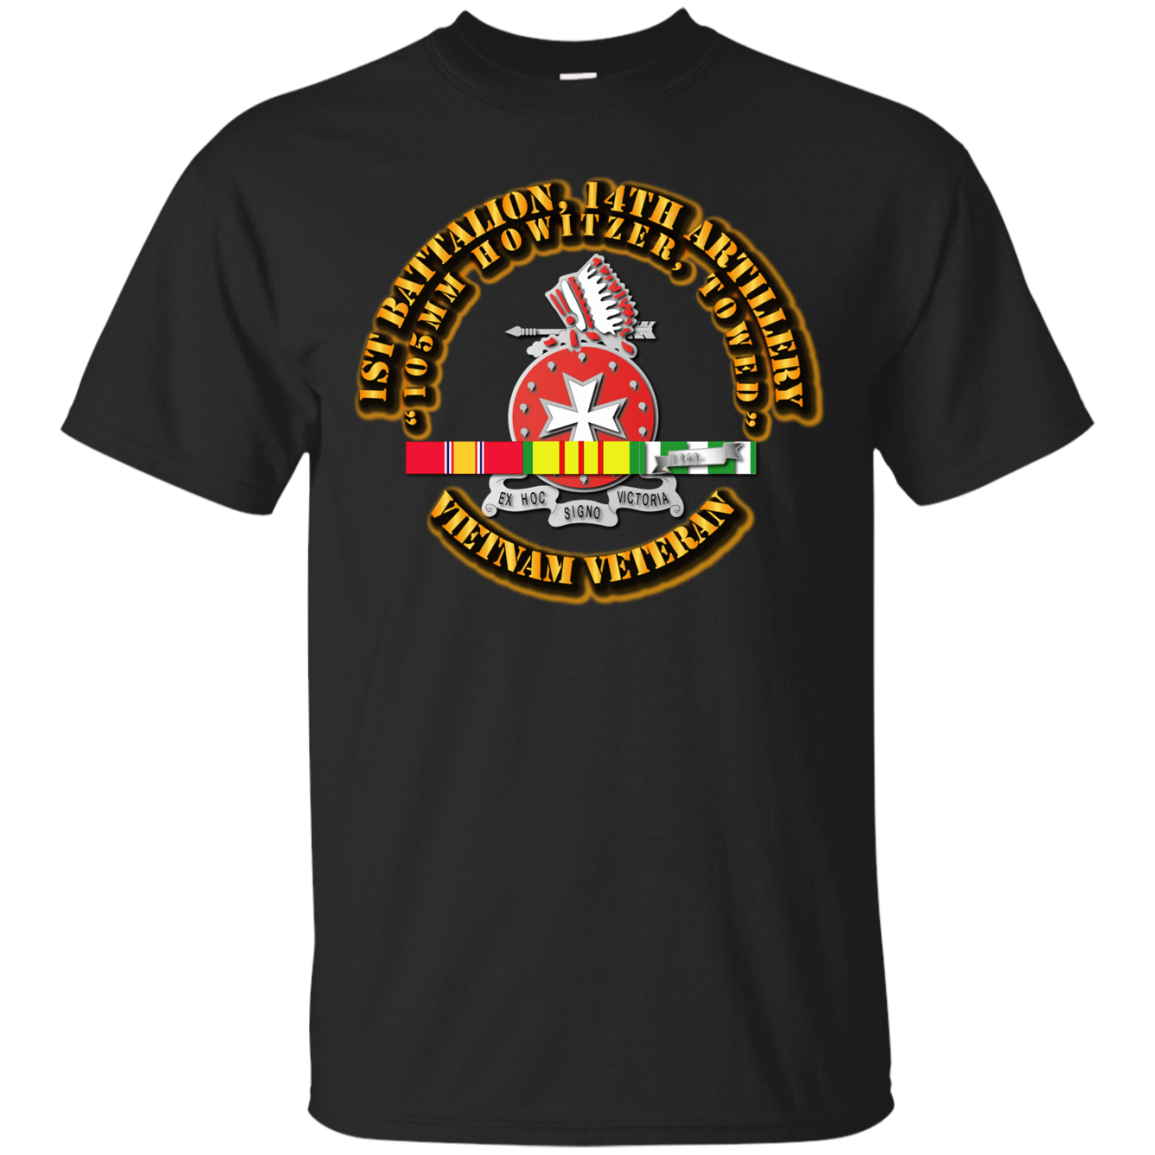 14th Artillery Regiment with Vietnam Service Ribbons T-Shirt Men